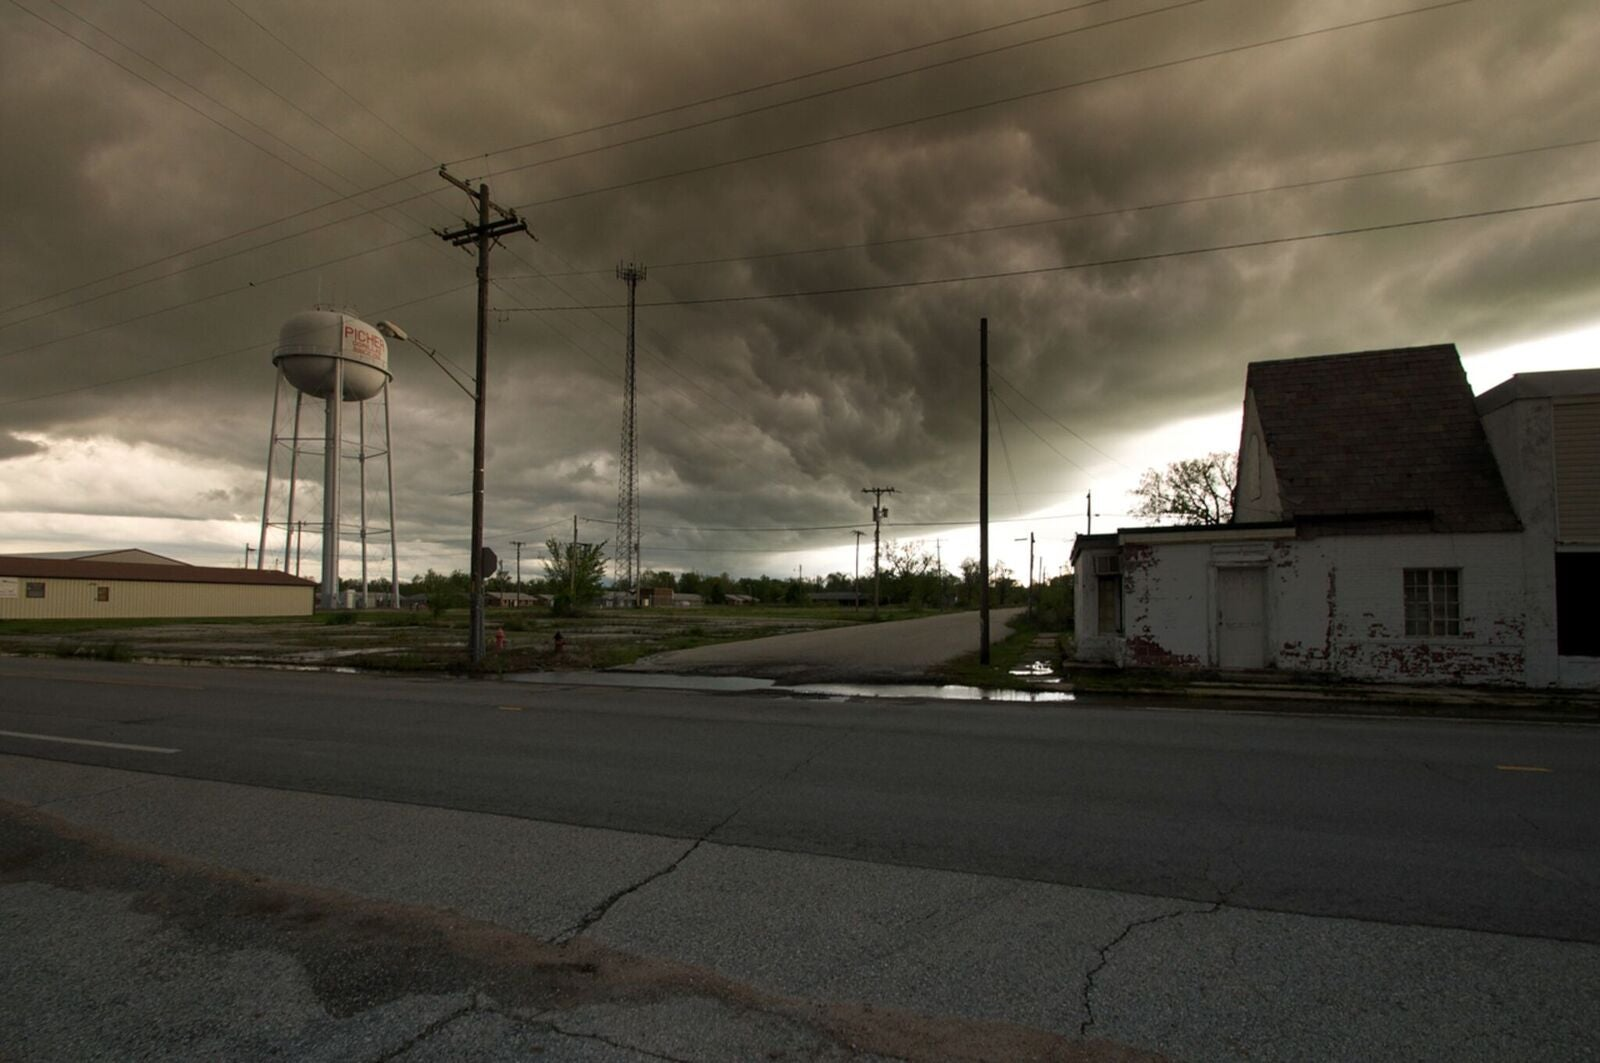 Photos of America's Most Toxic City Are an Ominous Warning